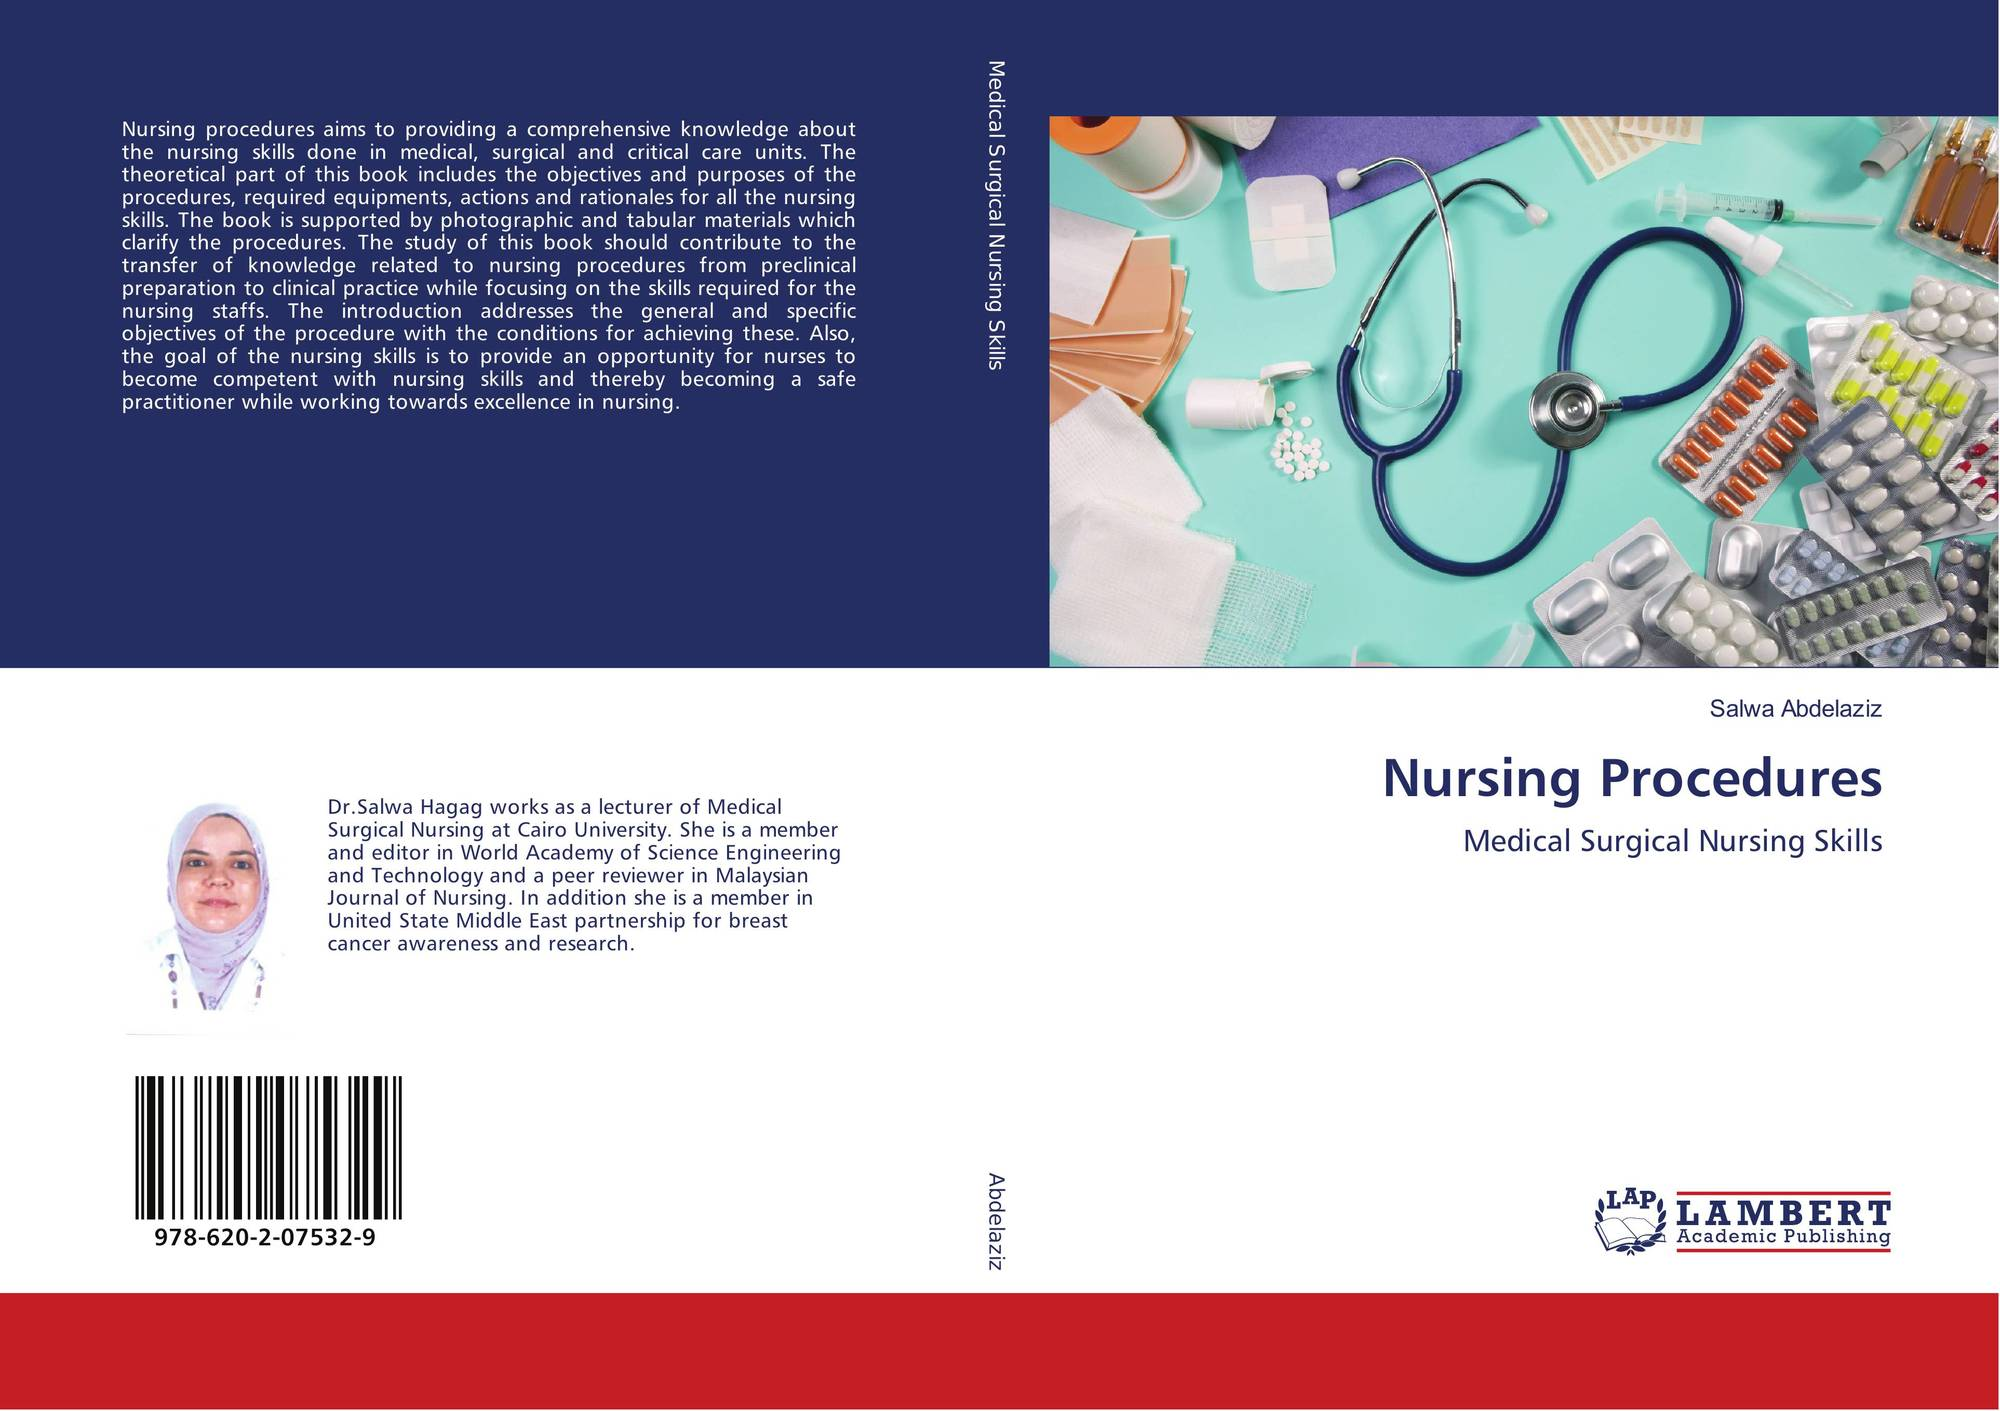 a study on how informatics affect the clinical nursing practice 2 Nursing 301: nursing informatics / science courses join studycom to take this practice exam premium members get access to this practice exam along with our entire library of lessons taught by.